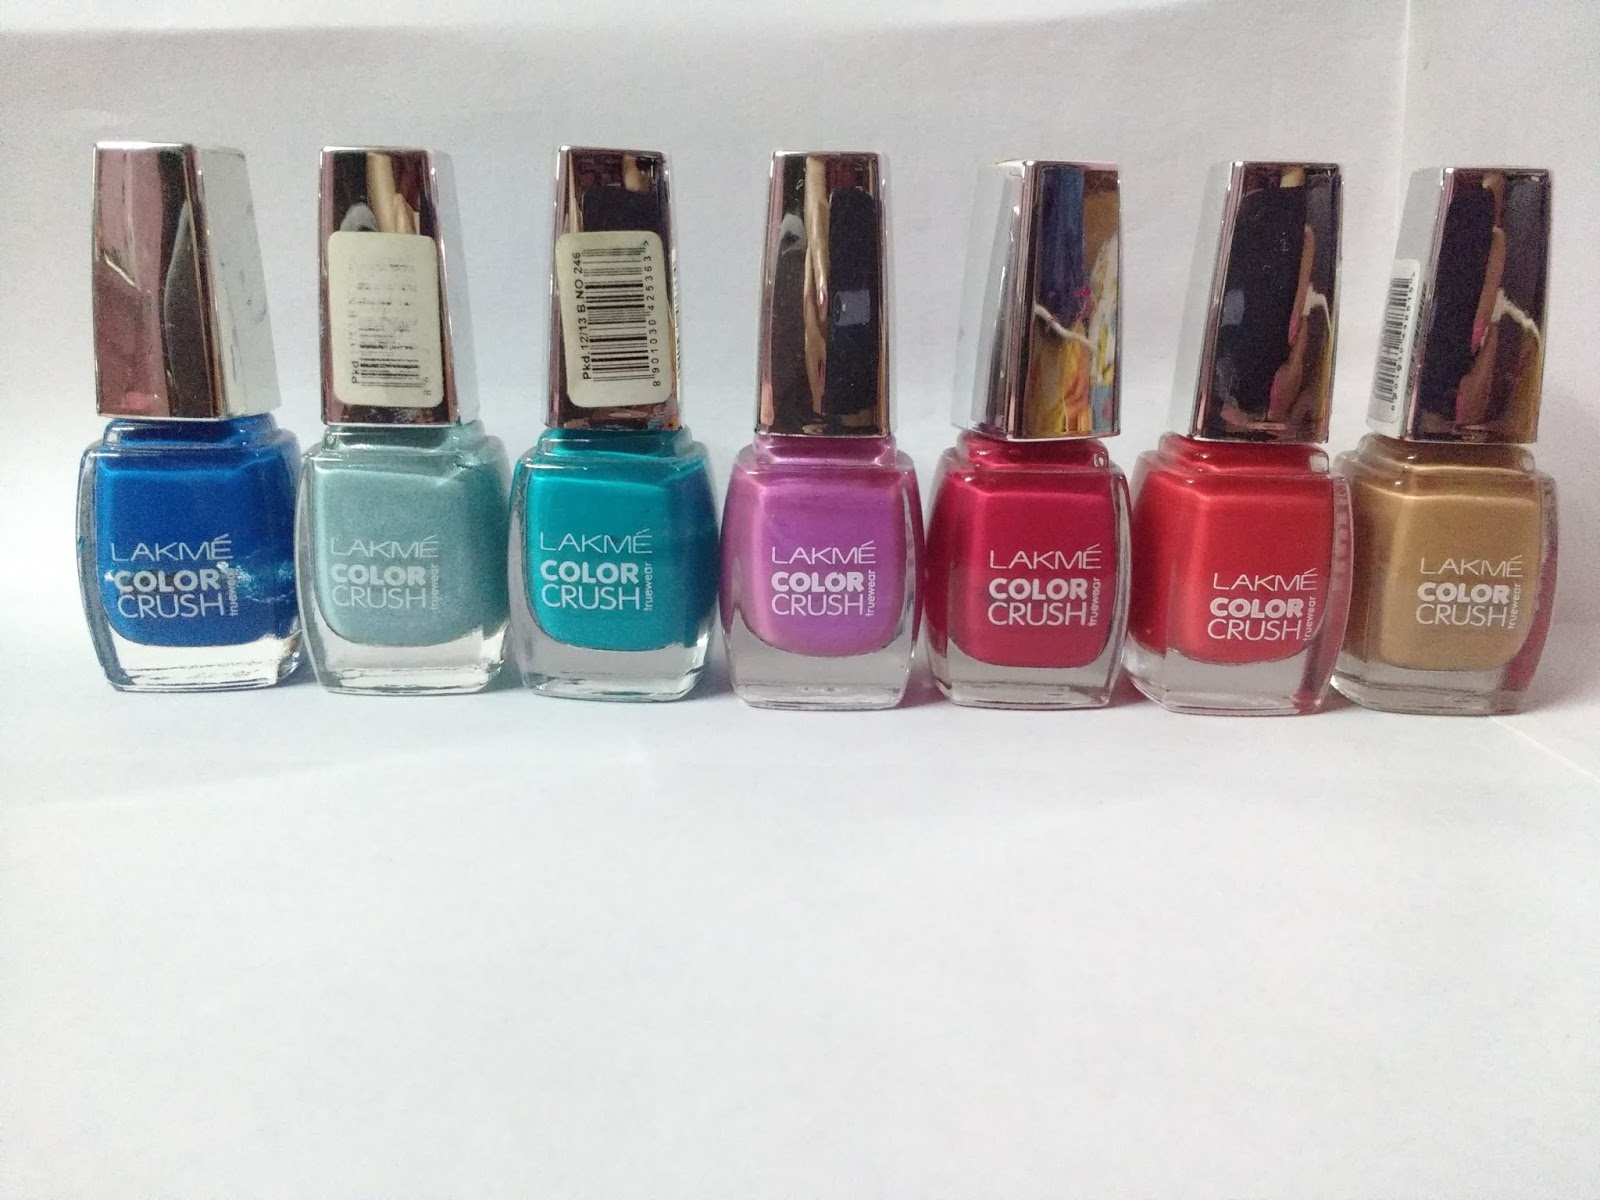 Lakme True Wear Color Crush Reviews And Swatches 27 24 41 31 47 02 03